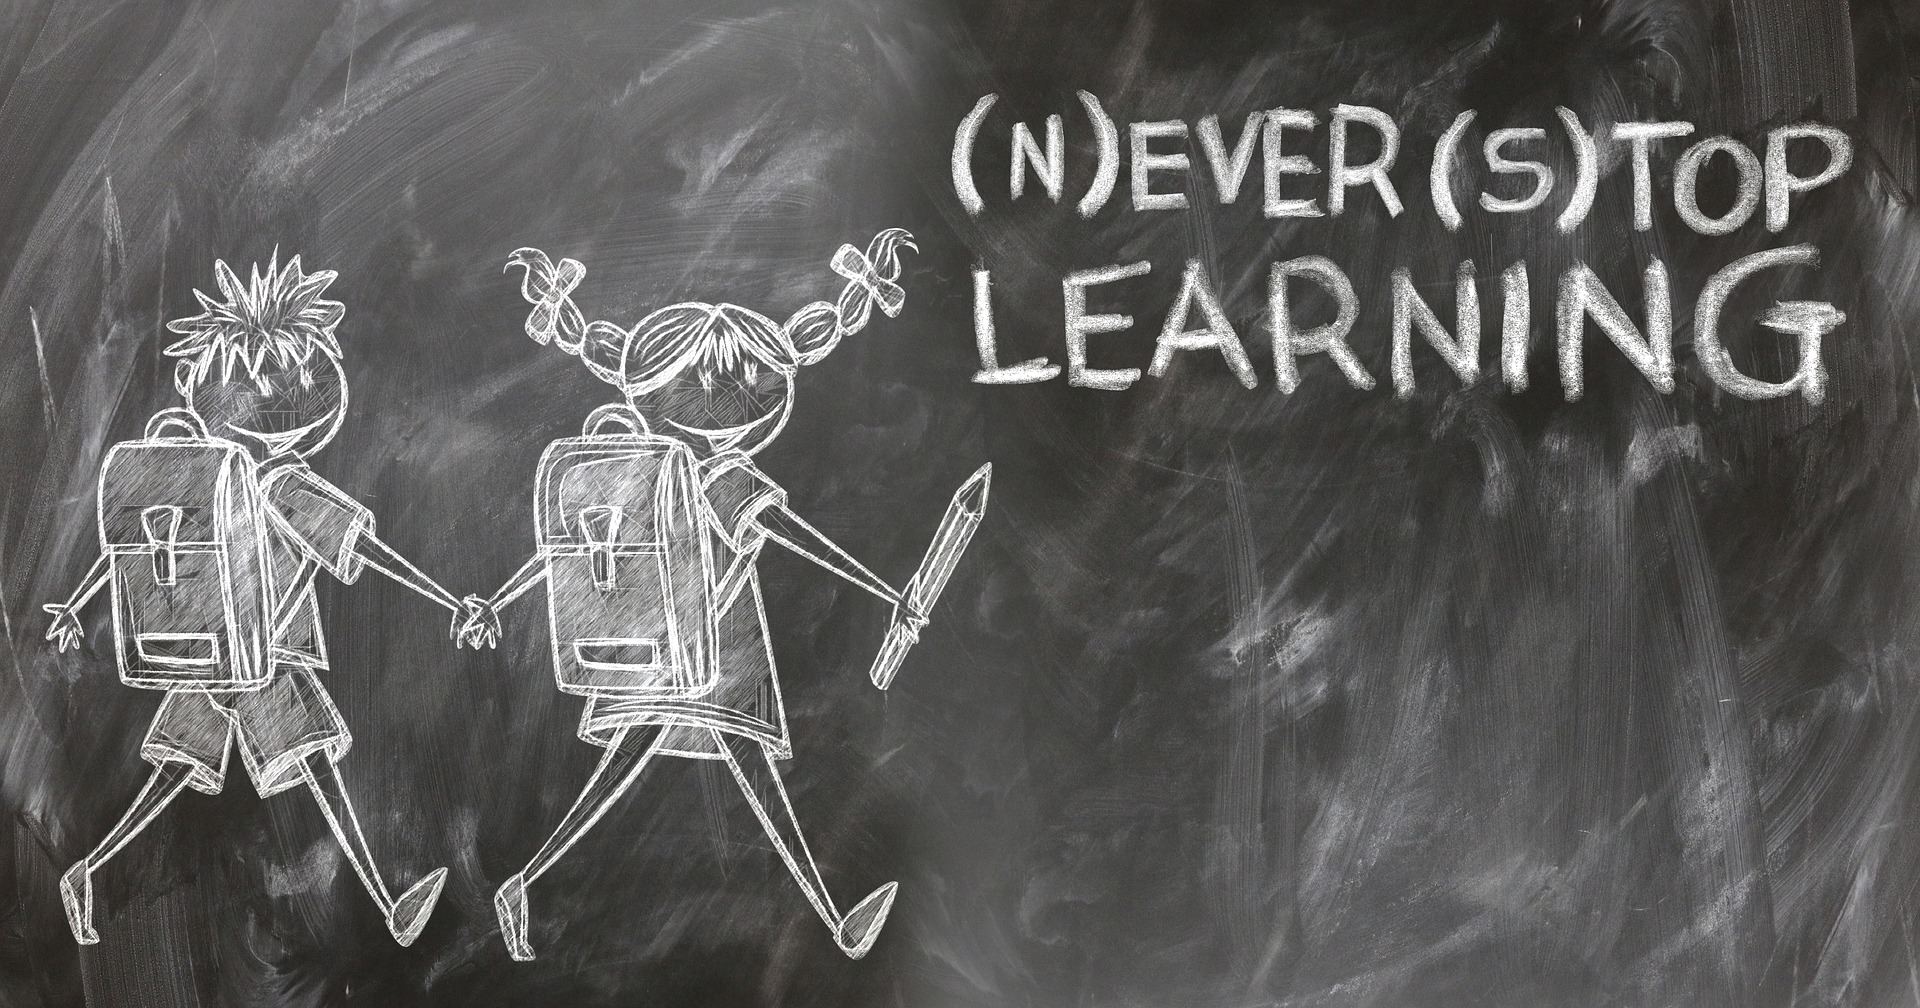 Never Stop Learning - Image by geralt